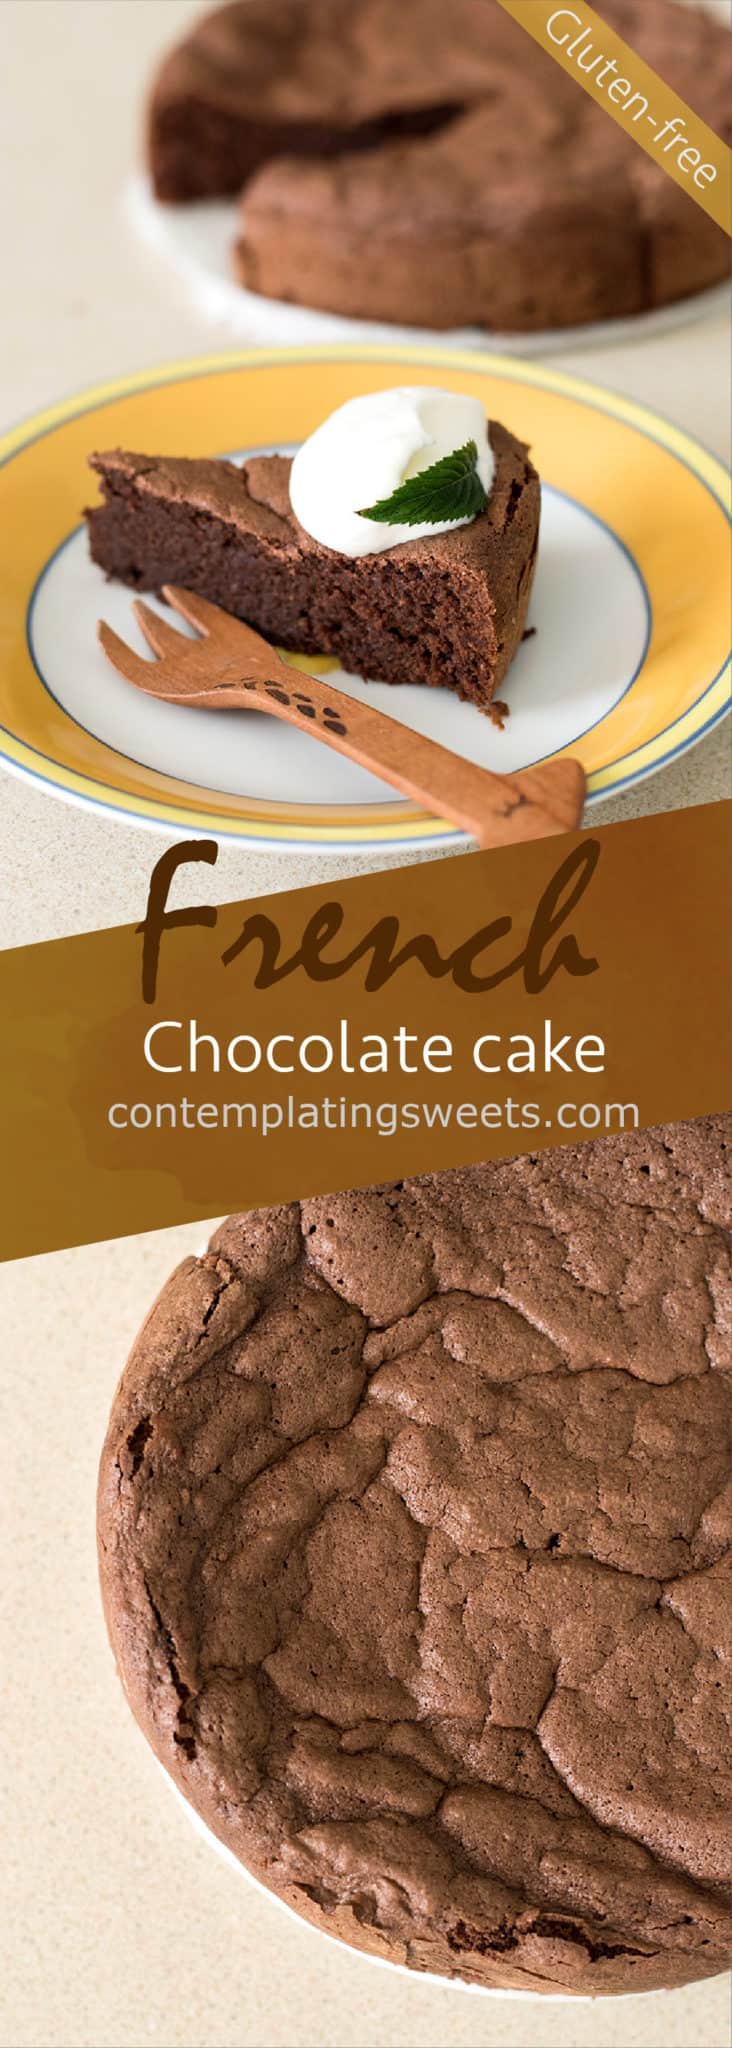 Gateau au chocolat, or ガトーショコラ in Japan, is a simple but popular French chocolate cake. This version uses almond flour, making it a gluten and grain free treat.